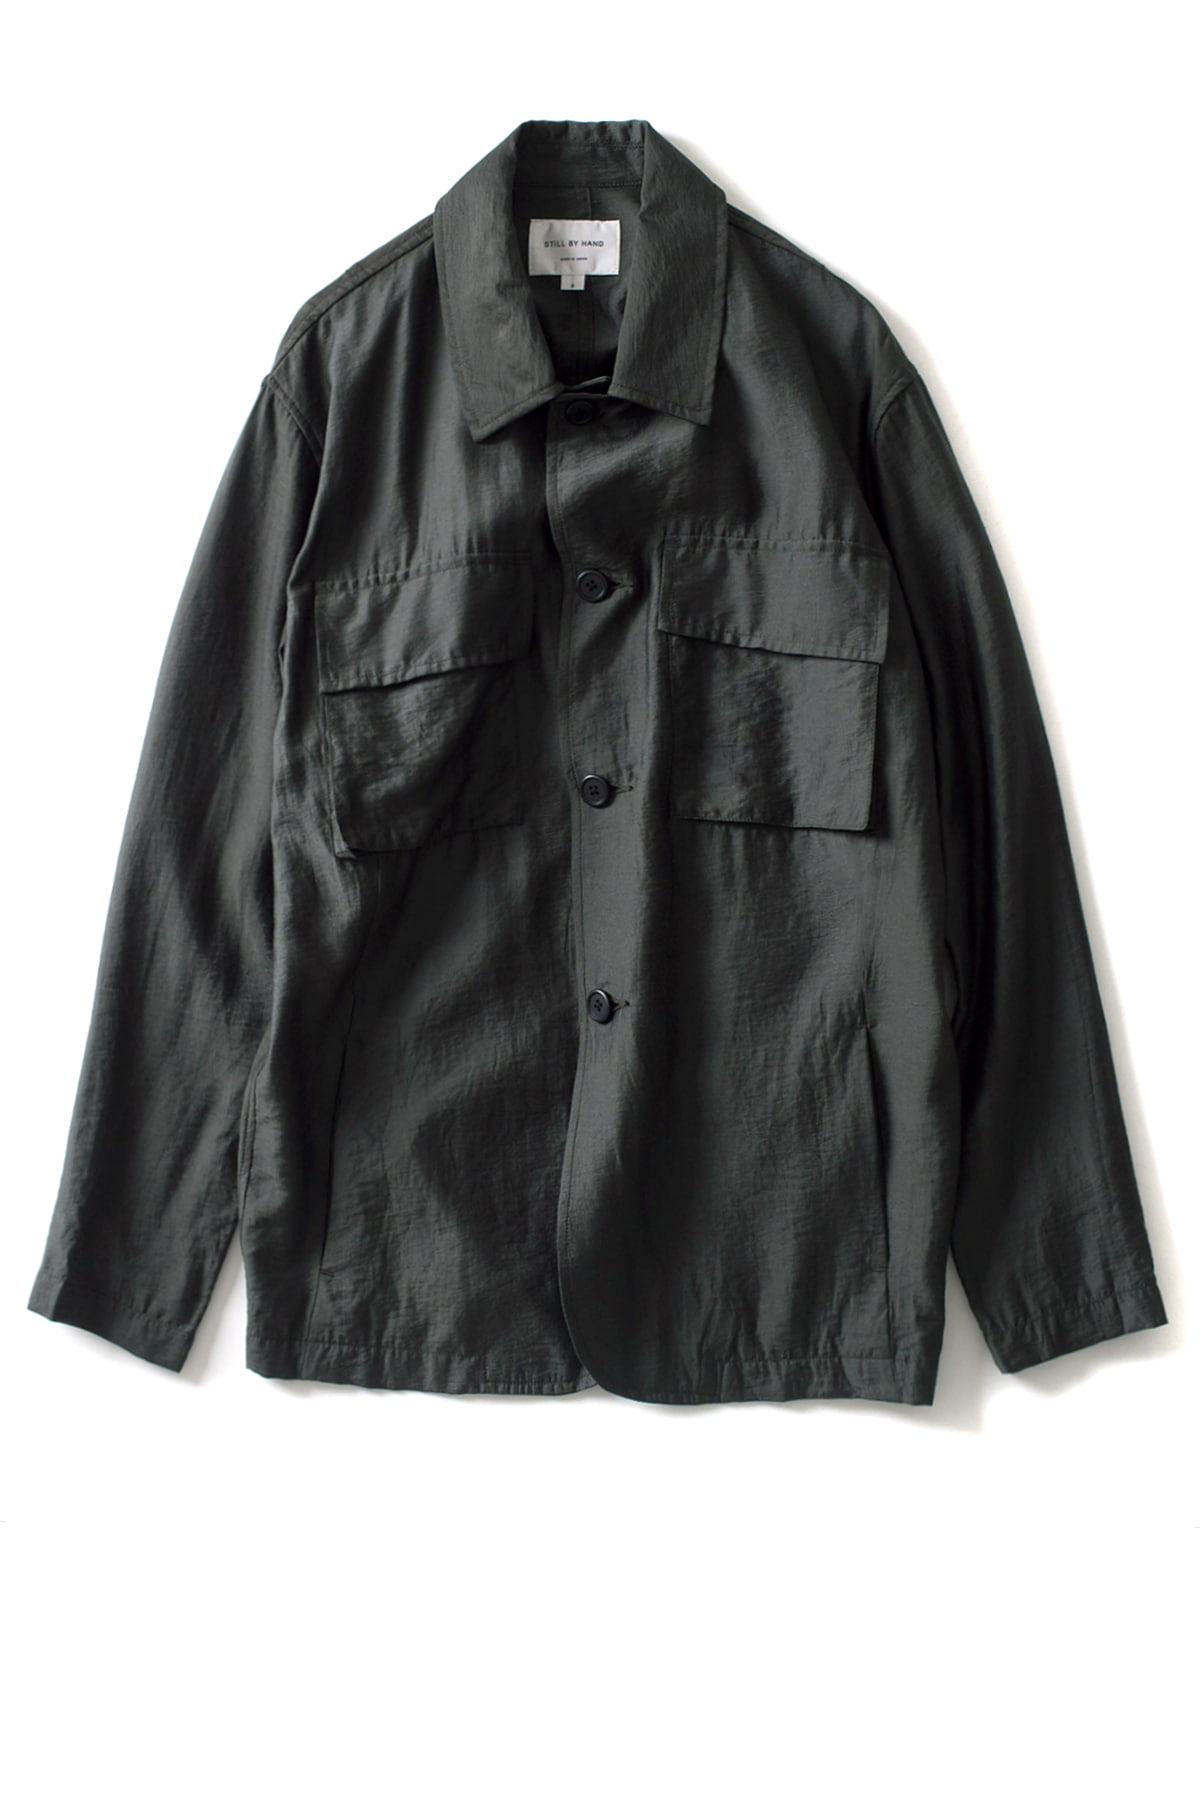 Still by Hand : B.D.U Detail Shirt Jacket (Green)